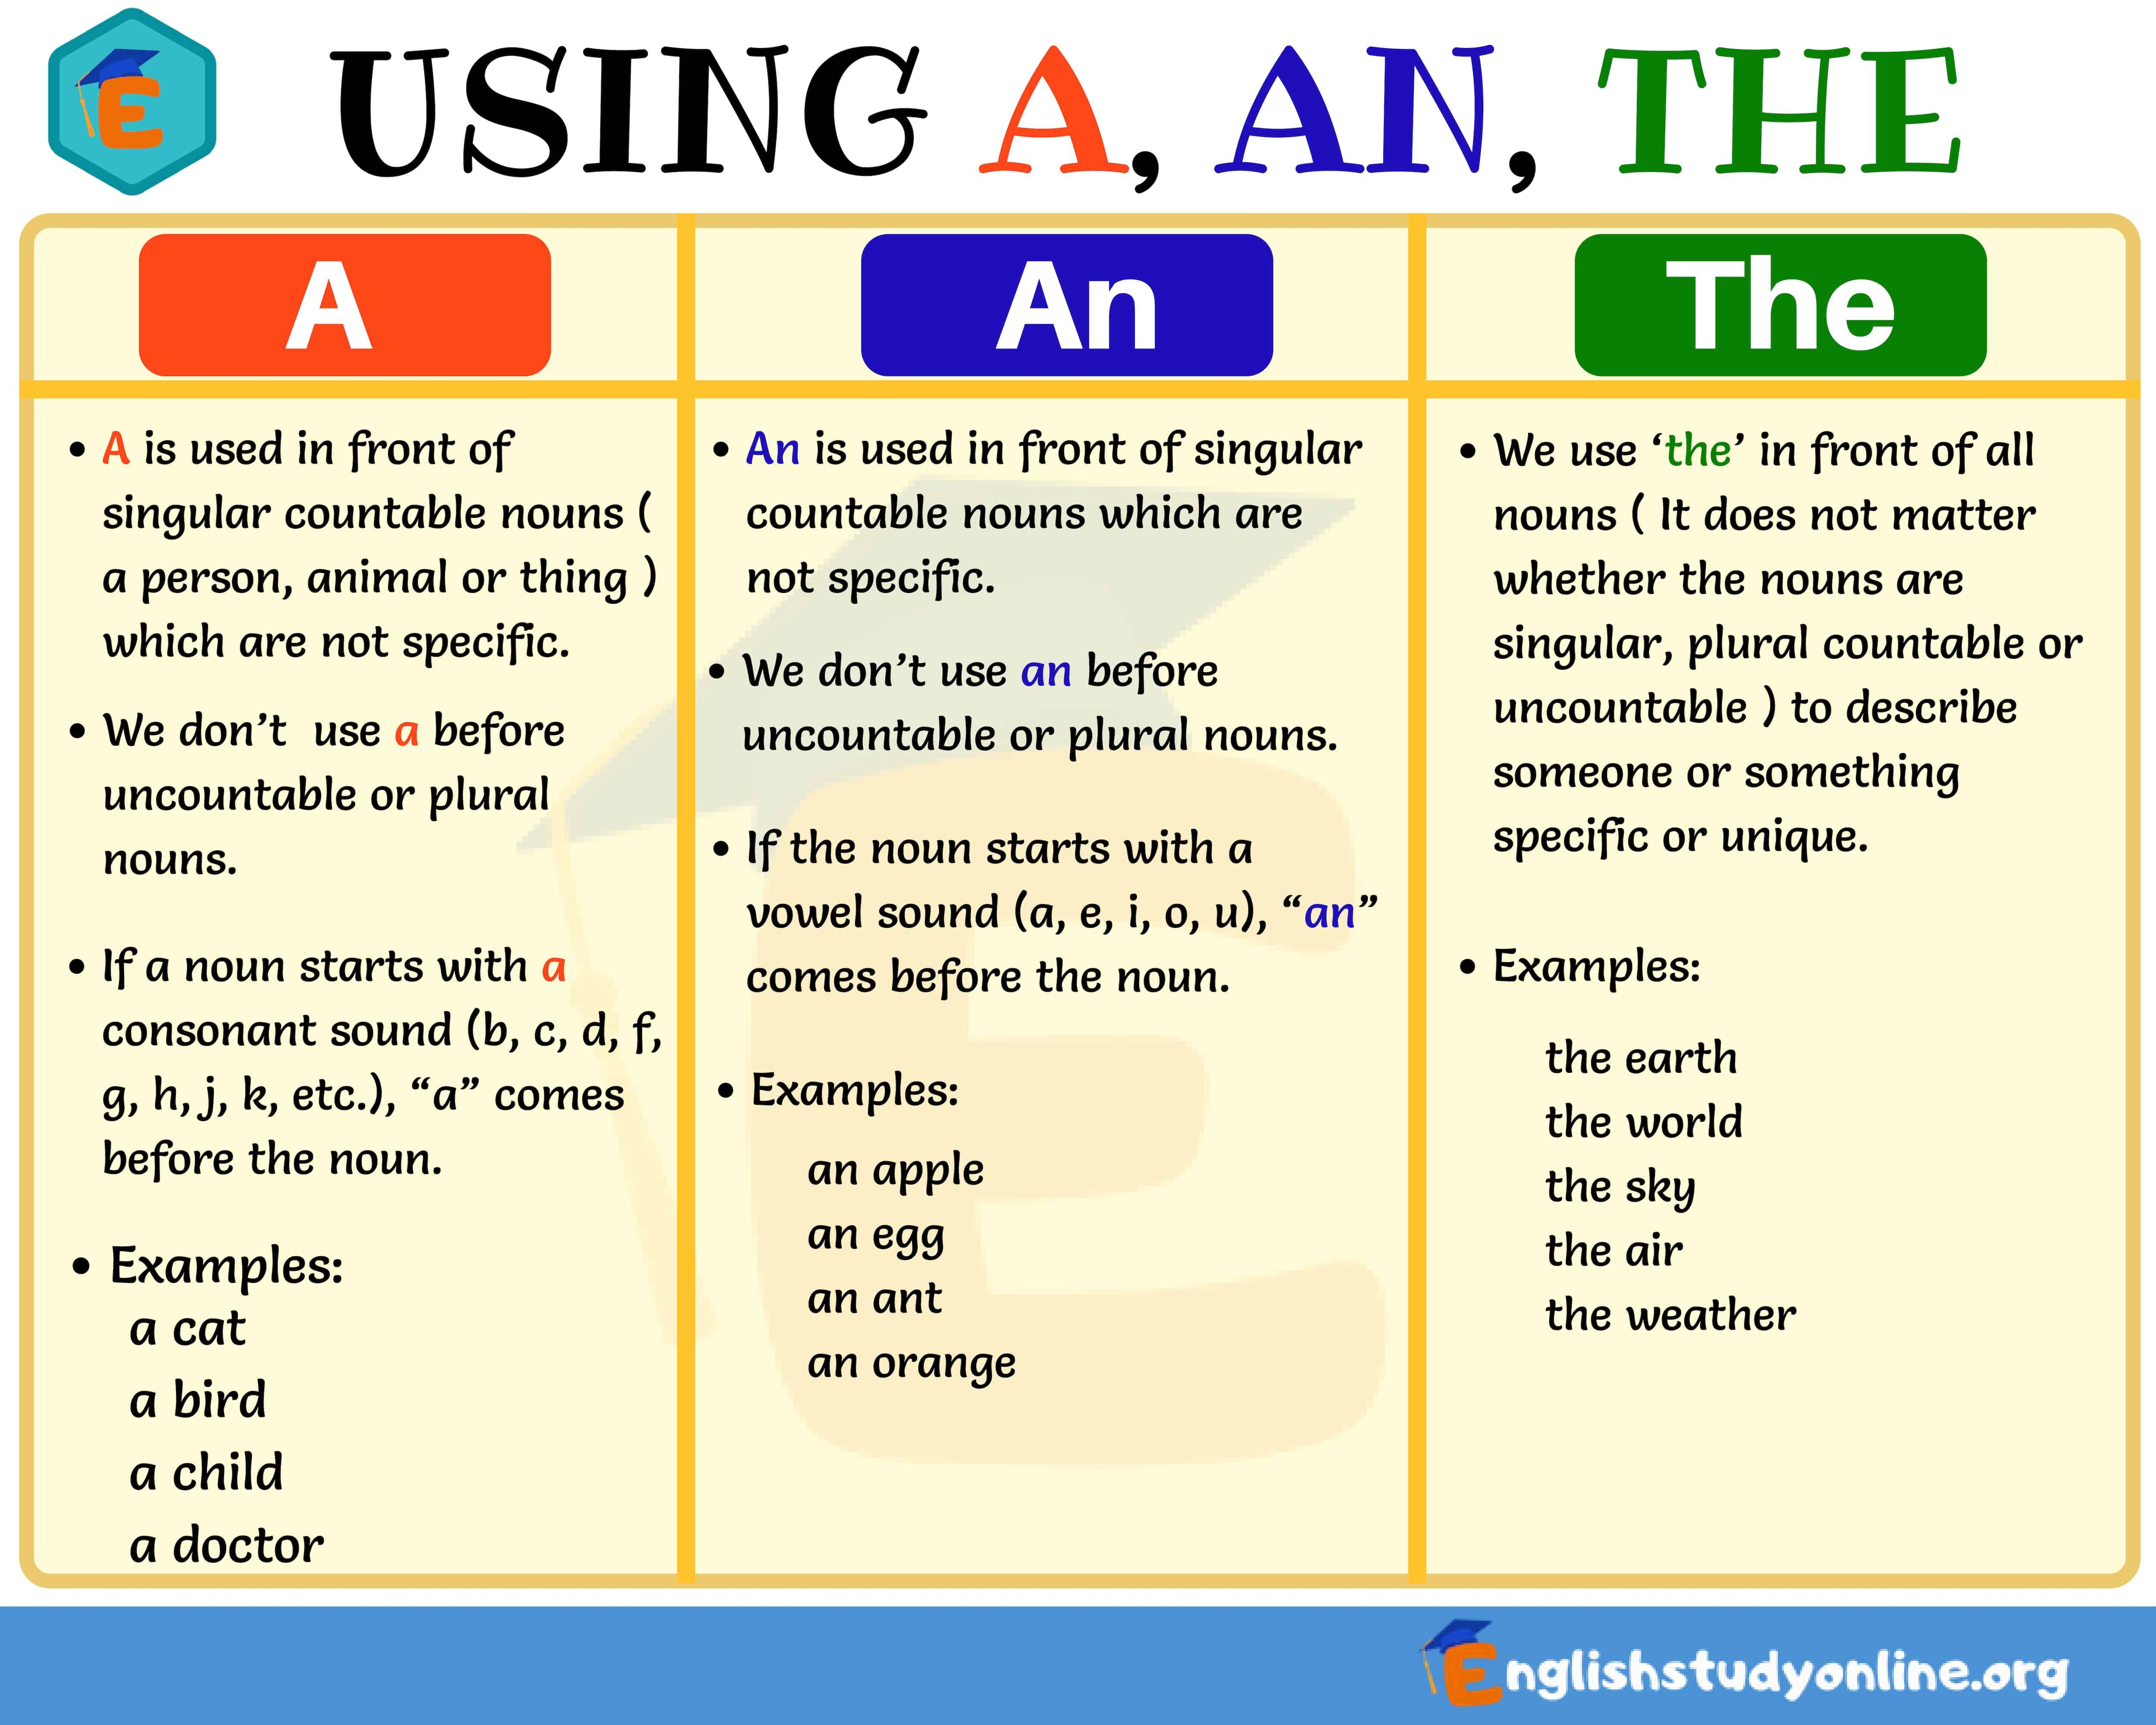 Definite And Indefinite Articles Using A An The In English English Study Online English Study English Grammar Learn English [ 4000 x 5000 Pixel ]